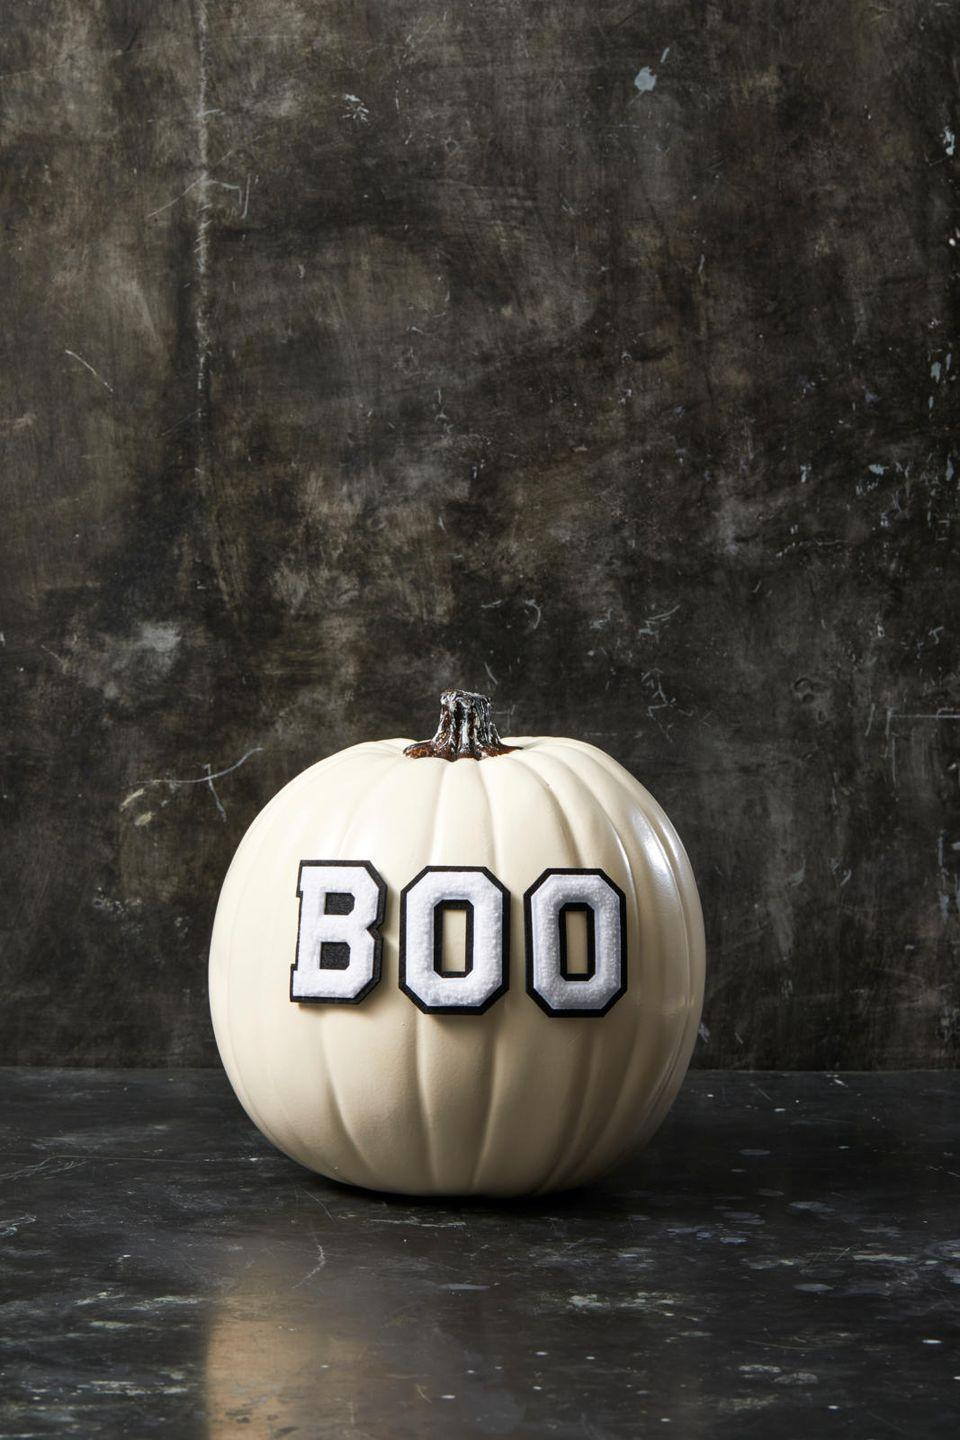 "<p>How's this for easy? Simply find letter stickers or patches that suit your style and stick or hot glue them to a painted pumpkin. You're done!</p><p><a class=""link rapid-noclick-resp"" href=""https://www.amazon.com/dp/B07HB15VNG/?tag=syn-yahoo-20&ascsubtag=%5Bartid%7C10055.g.1714%5Bsrc%7Cyahoo-us"" rel=""nofollow noopener"" target=""_blank"" data-ylk=""slk:SHOP LETTERS"">SHOP LETTERS</a></p><p><strong>RELATED:</strong> <a href=""https://www.goodhousekeeping.com/holidays/halloween-ideas/g421/halloween-decorating-ideas/"" rel=""nofollow noopener"" target=""_blank"" data-ylk=""slk:60+ Easy and Spooky Halloween Decorations for Fall"" class=""link rapid-noclick-resp"">60+ Easy and Spooky Halloween Decorations for Fall</a></p>"